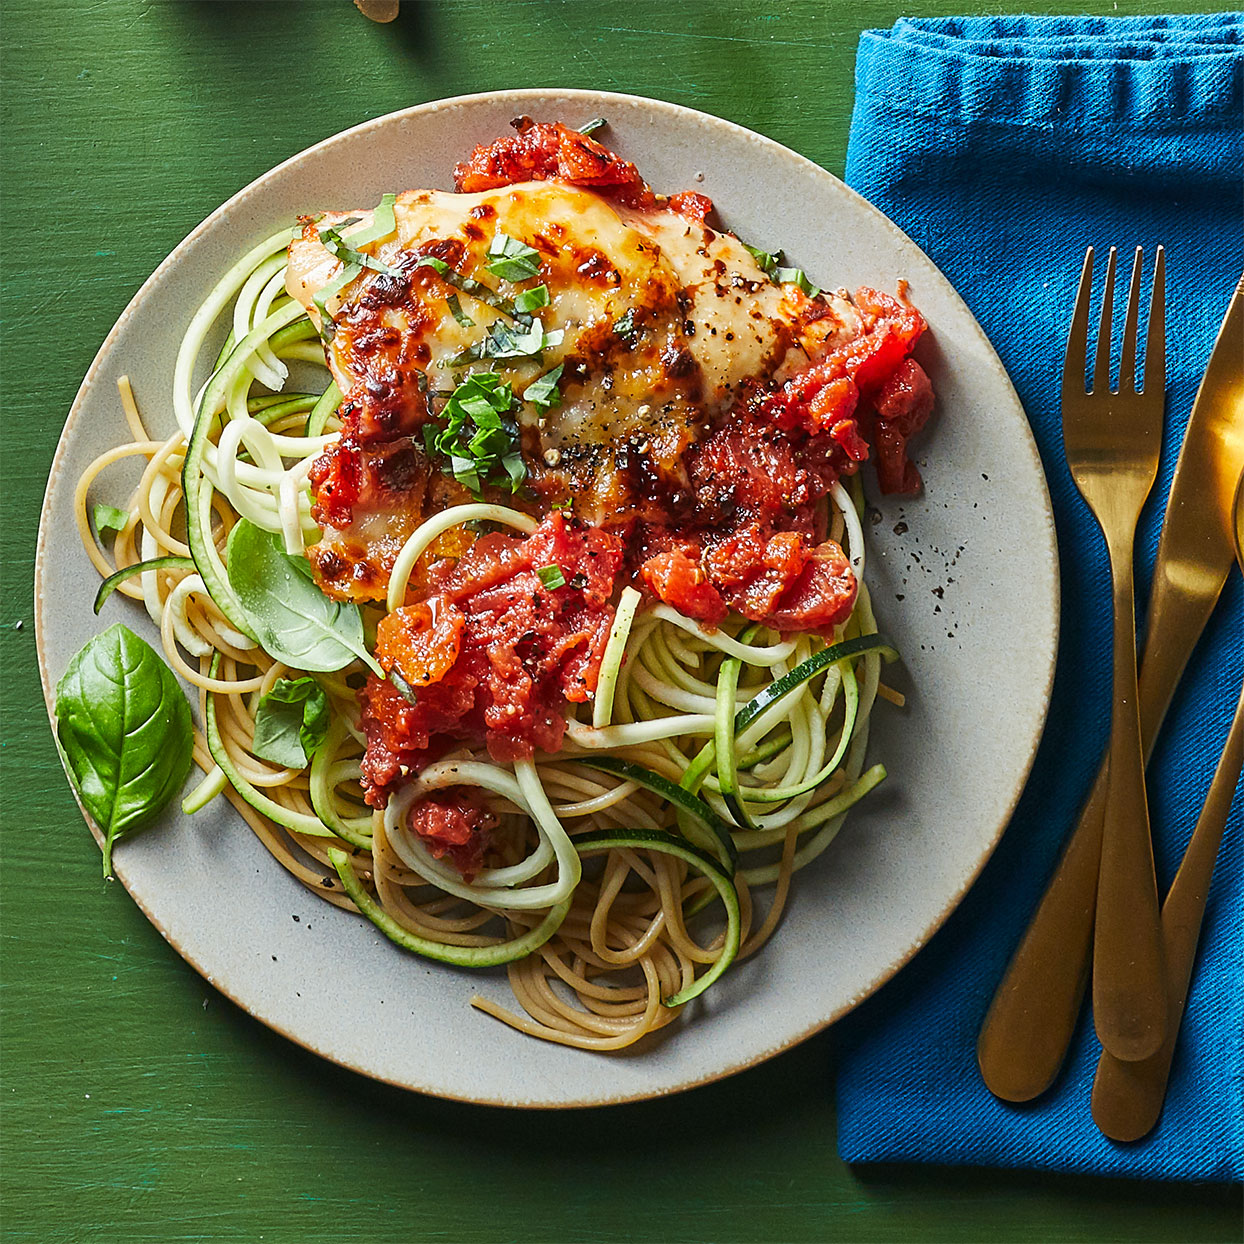 Balsamic Chicken Pasta Bake with Zucchini Noodles